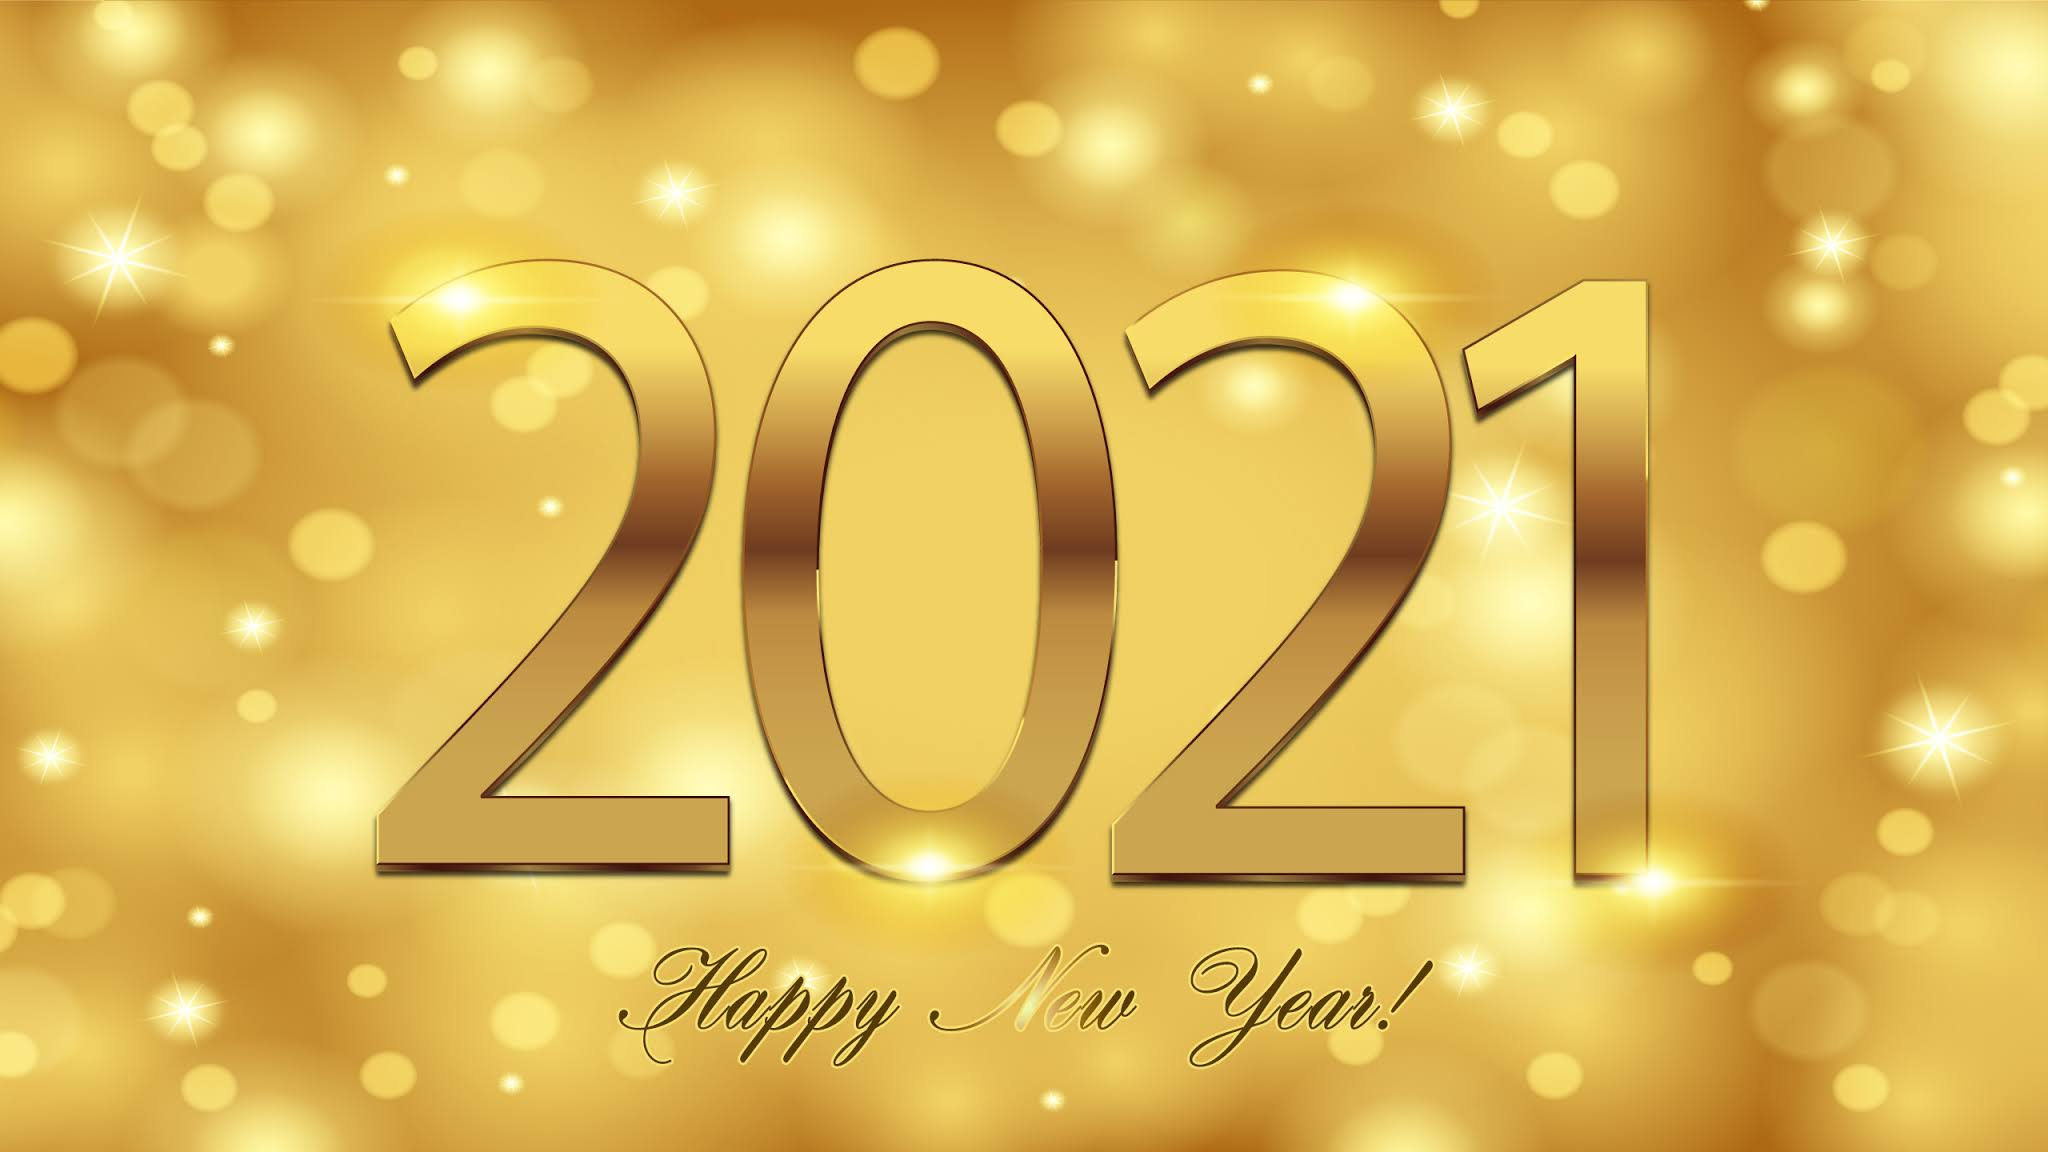 happy new year 2021 background hd image happy new year 2021 background hd image